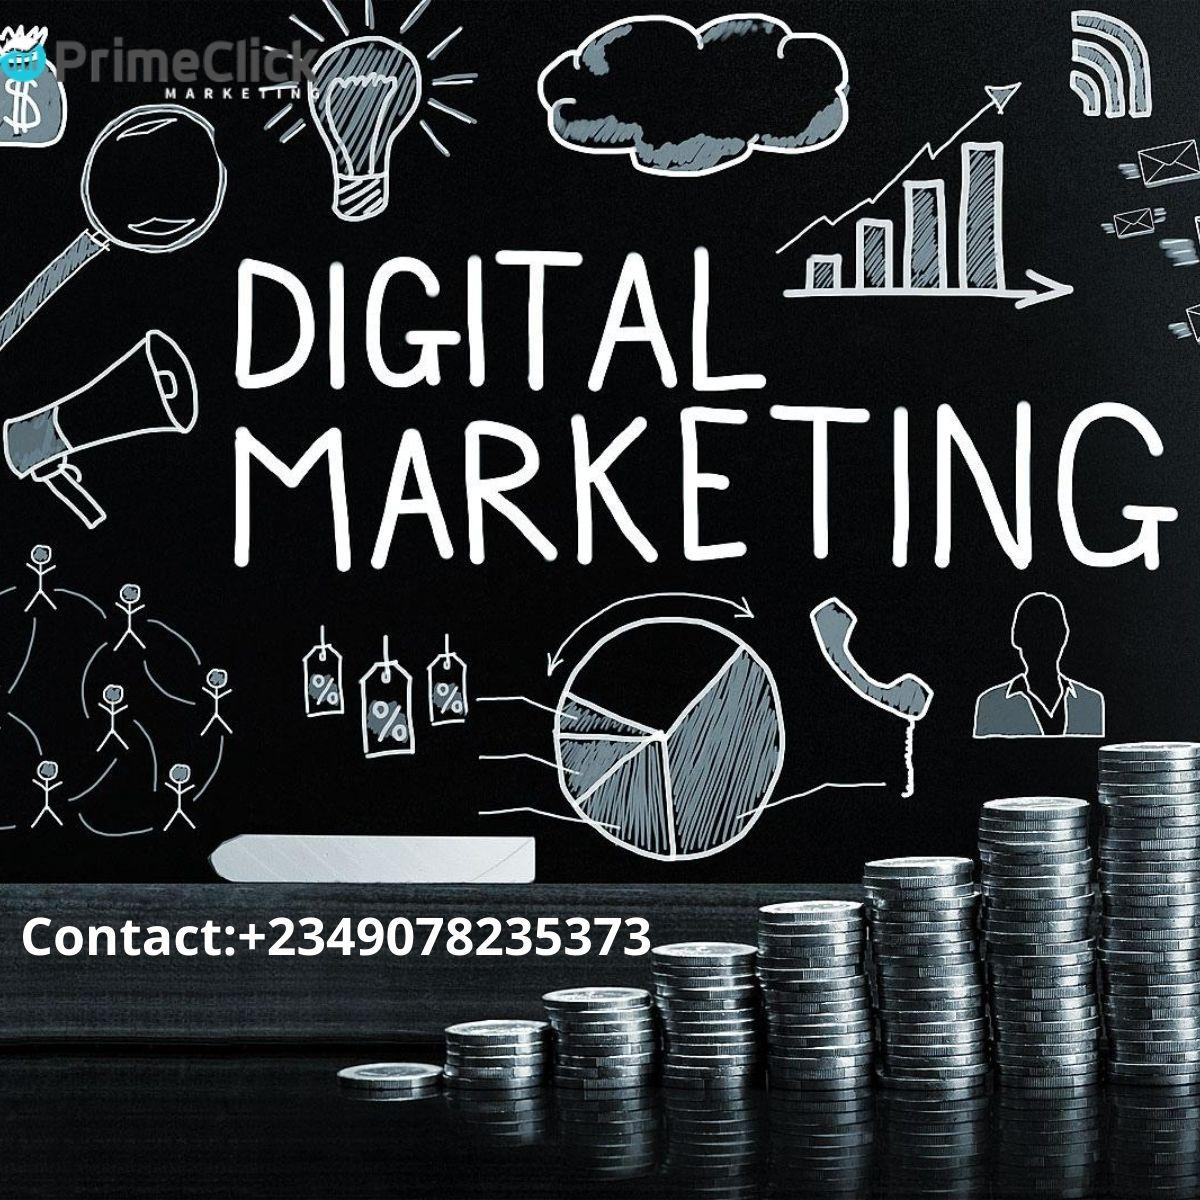 Digital Marketing and Research Agency